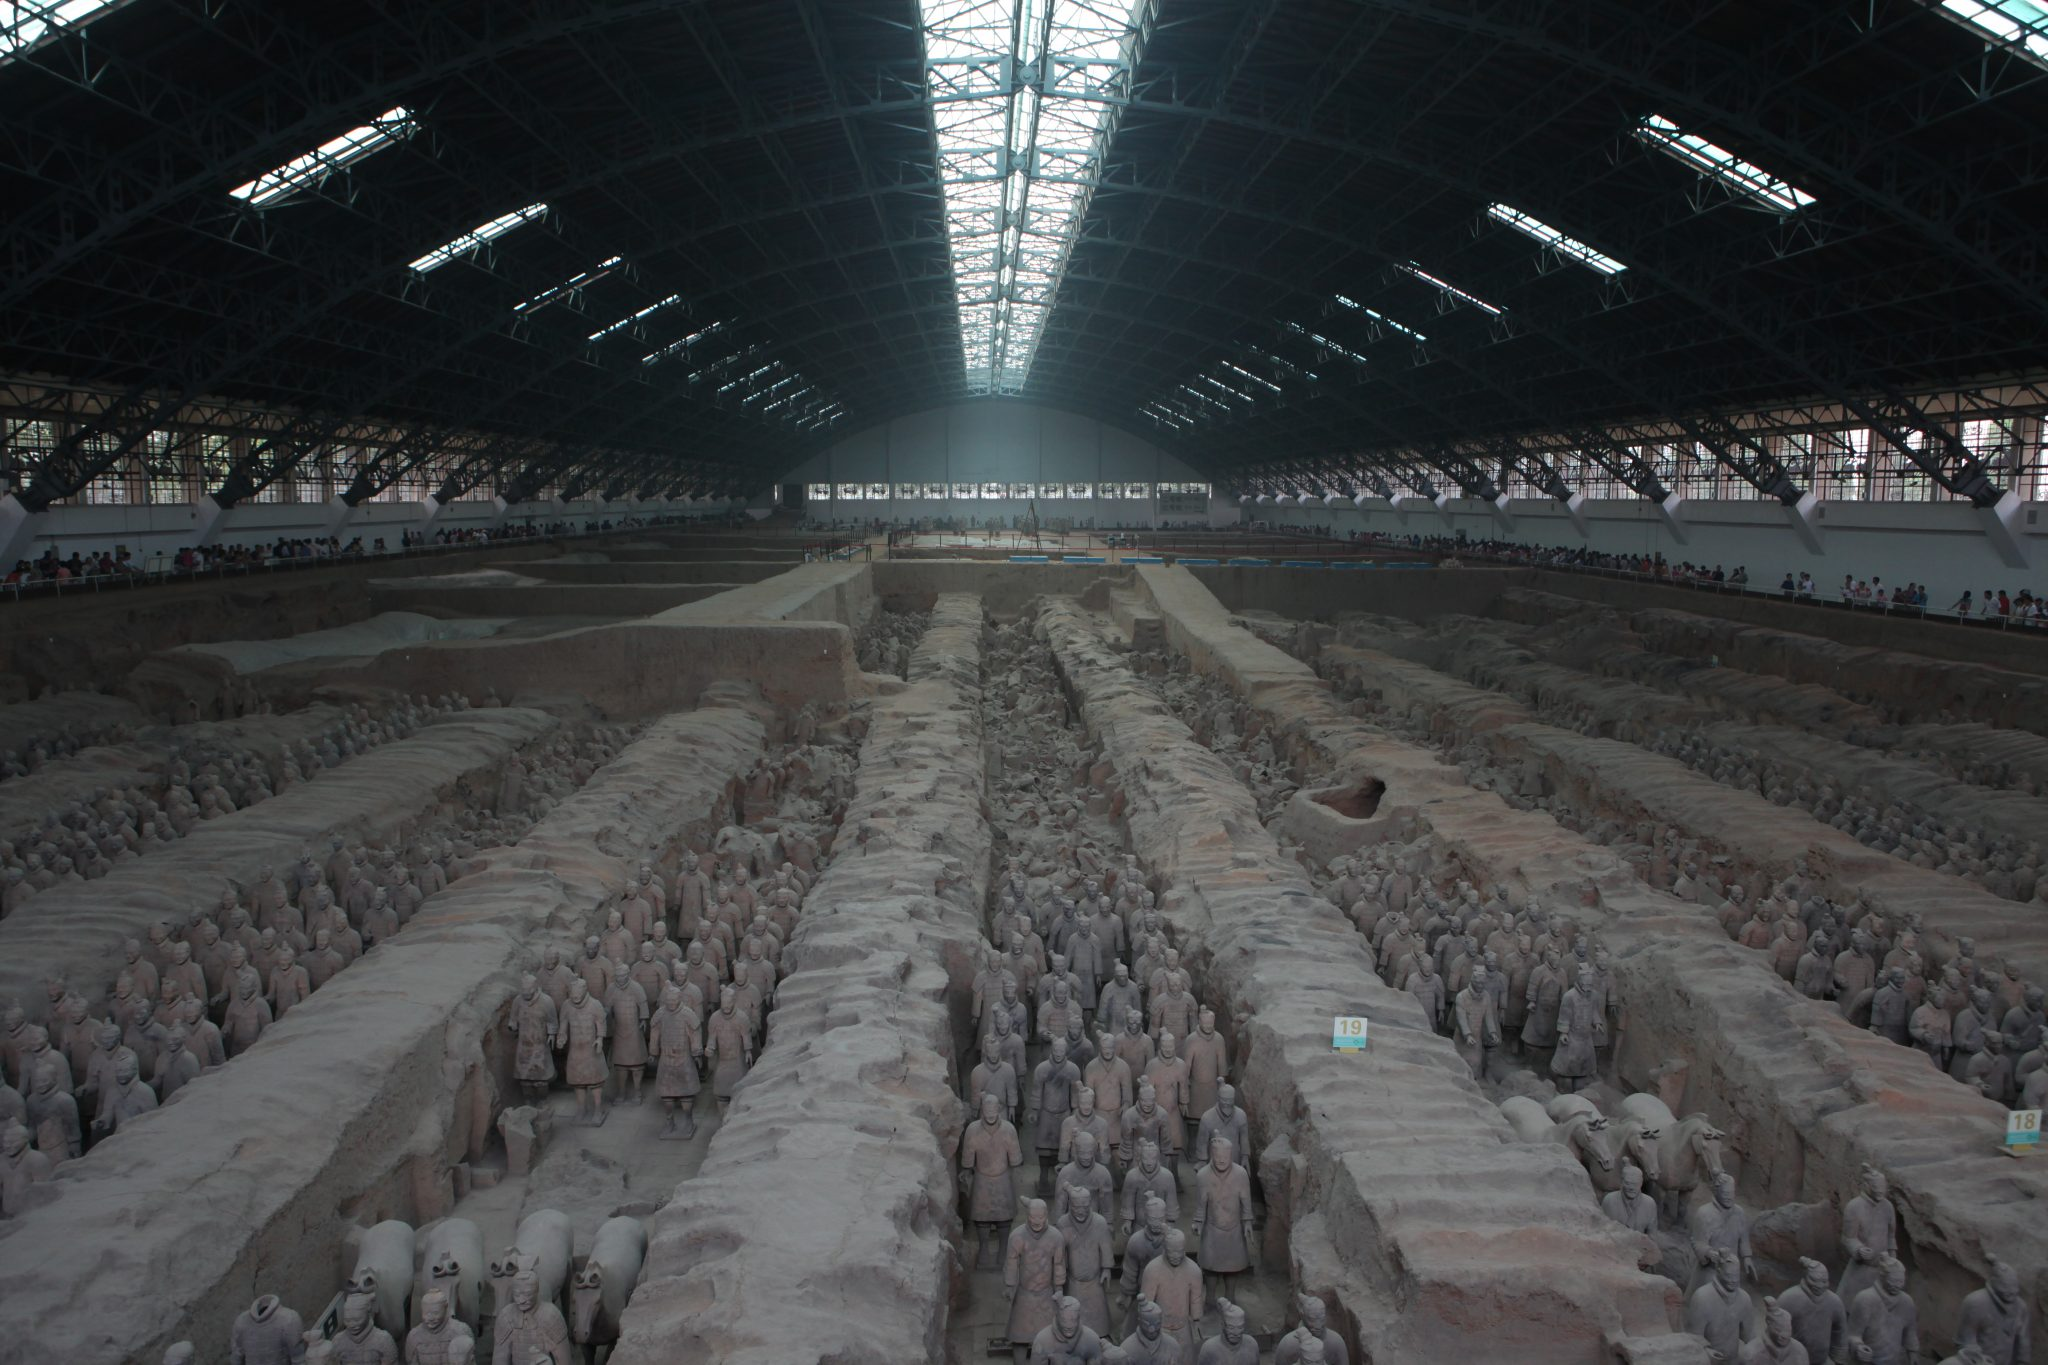 """Terracotta Army"", a collection of terracotta sculptures depicting the armies of Qin Shi Huang, the first Emperor of China @ Julie Laurent, 2011, CC BY-NC-ND 2.0"